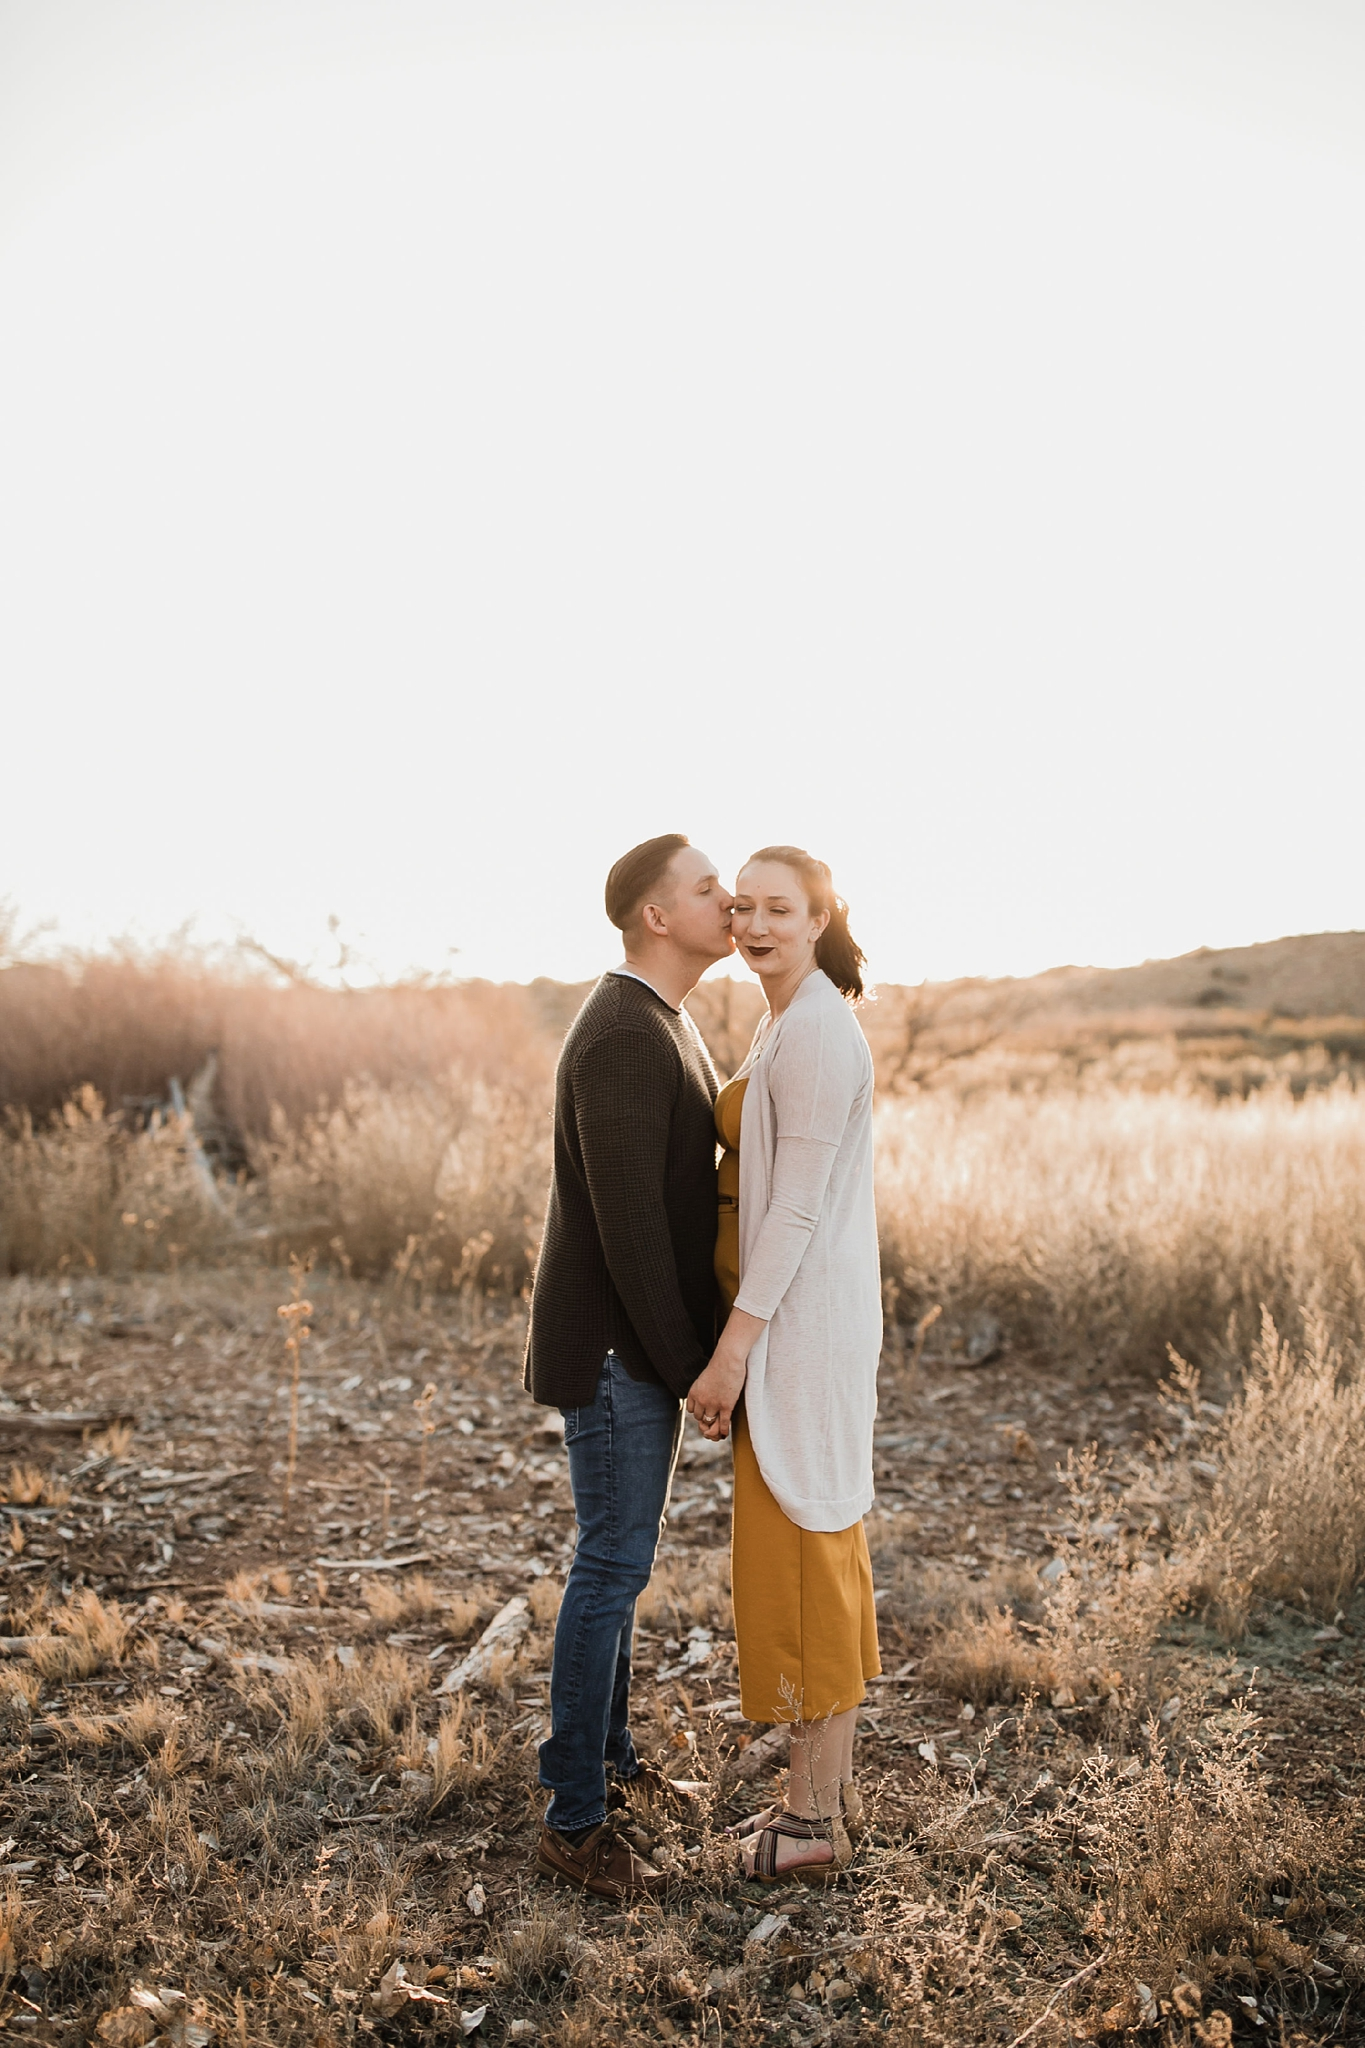 Alicia+lucia+photography+-+albuquerque+wedding+photographer+-+santa+fe+wedding+photography+-+new+mexico+wedding+photographer+-+new+mexico+wedding+-+engagement+-+new+mexico+engagemnt+-+outdoor+engagement_0006.jpg